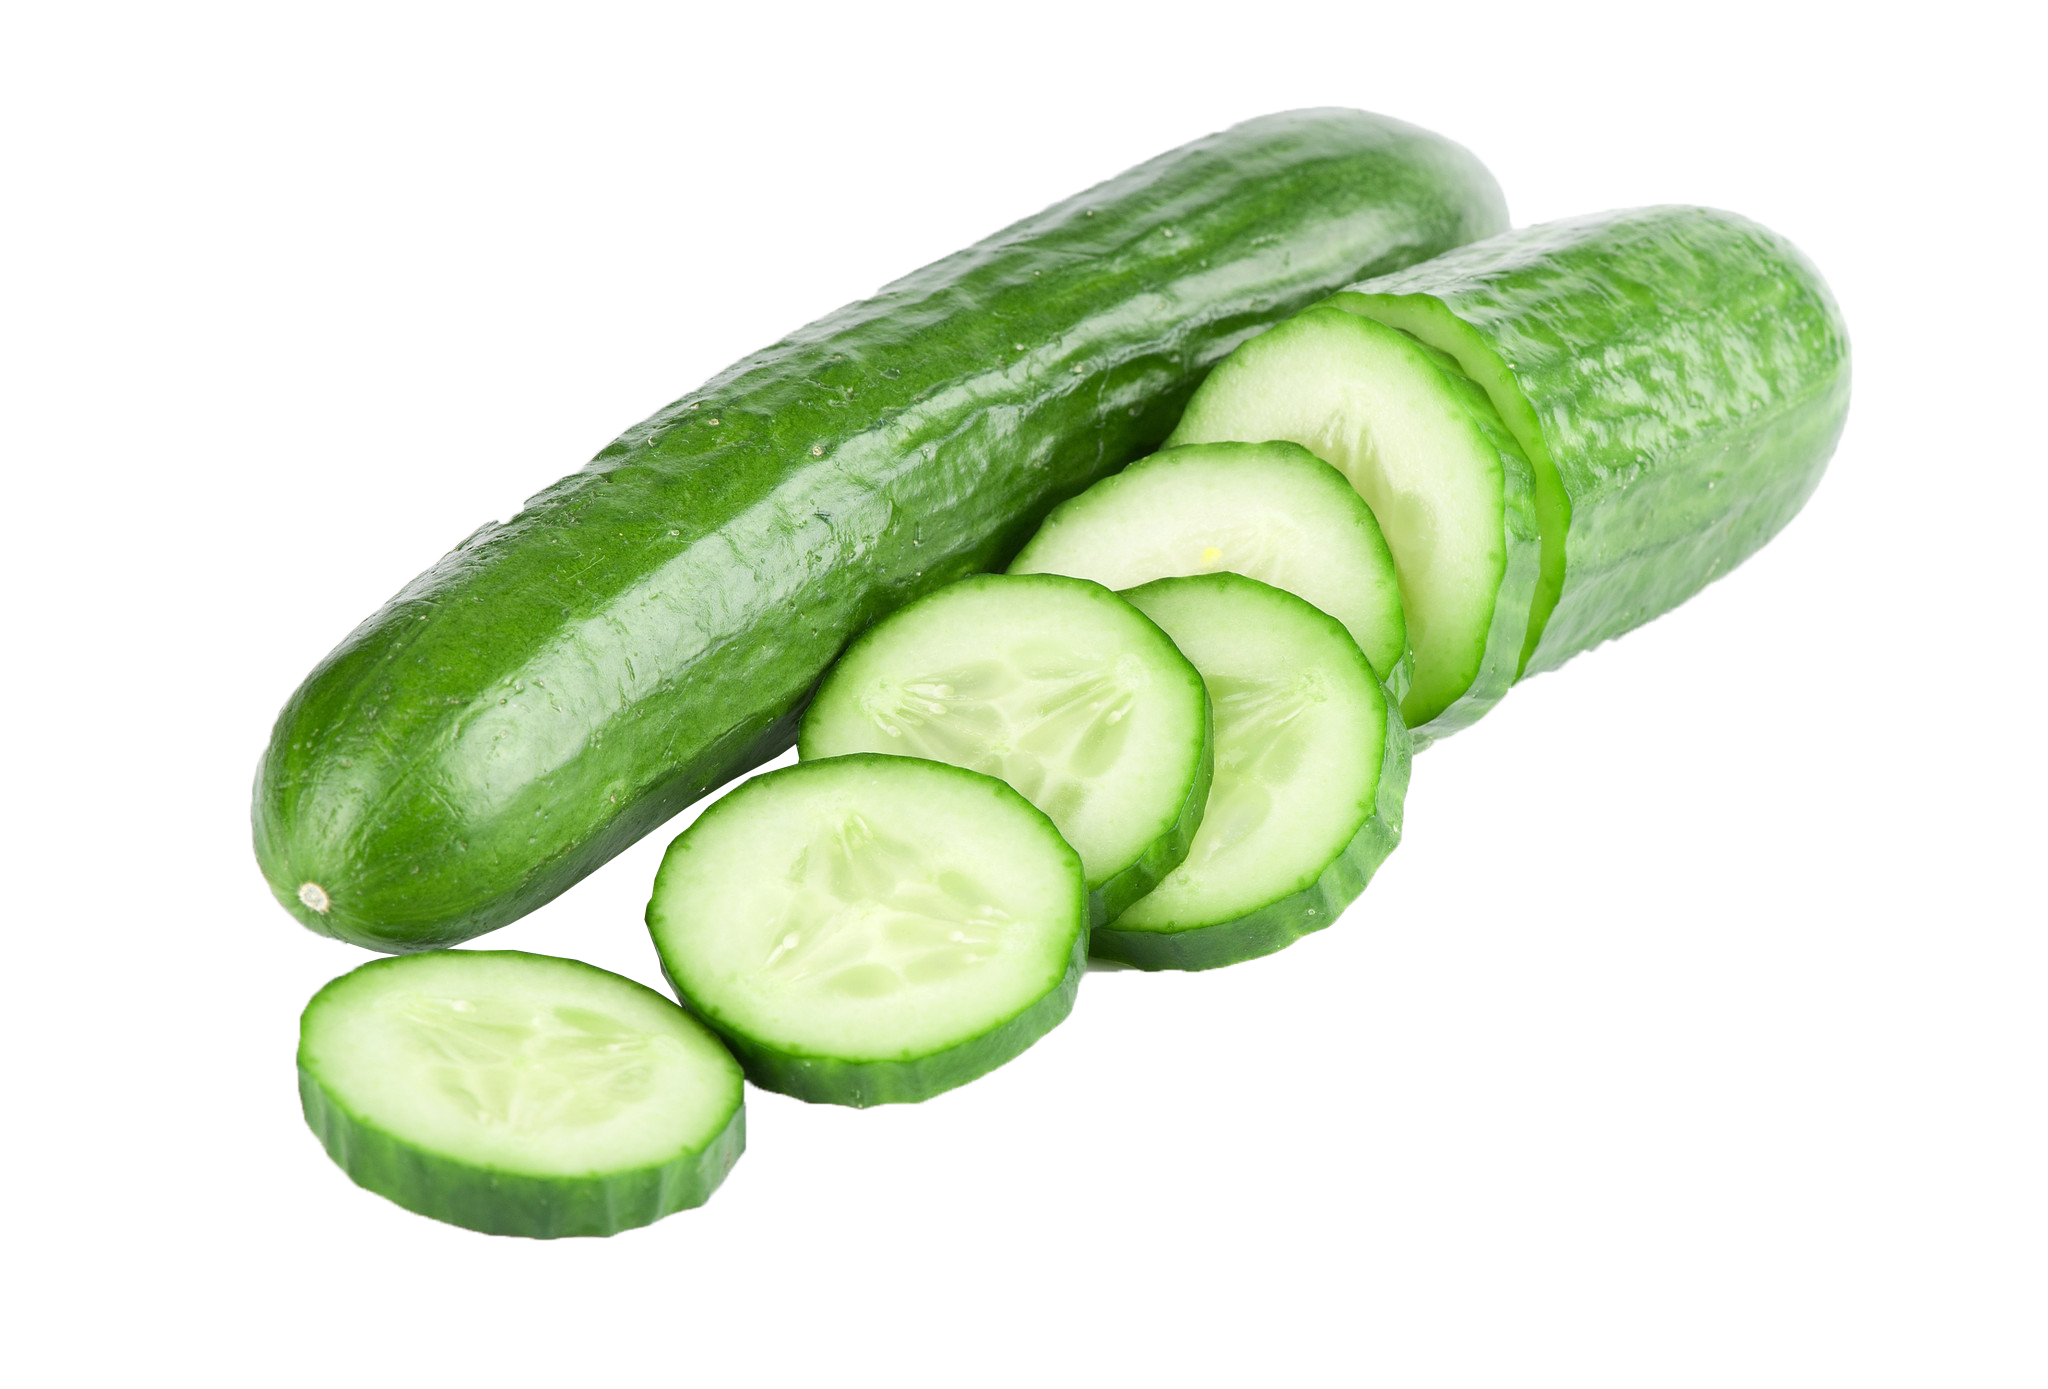 Png image purepng free. Vegetables clipart cucumber